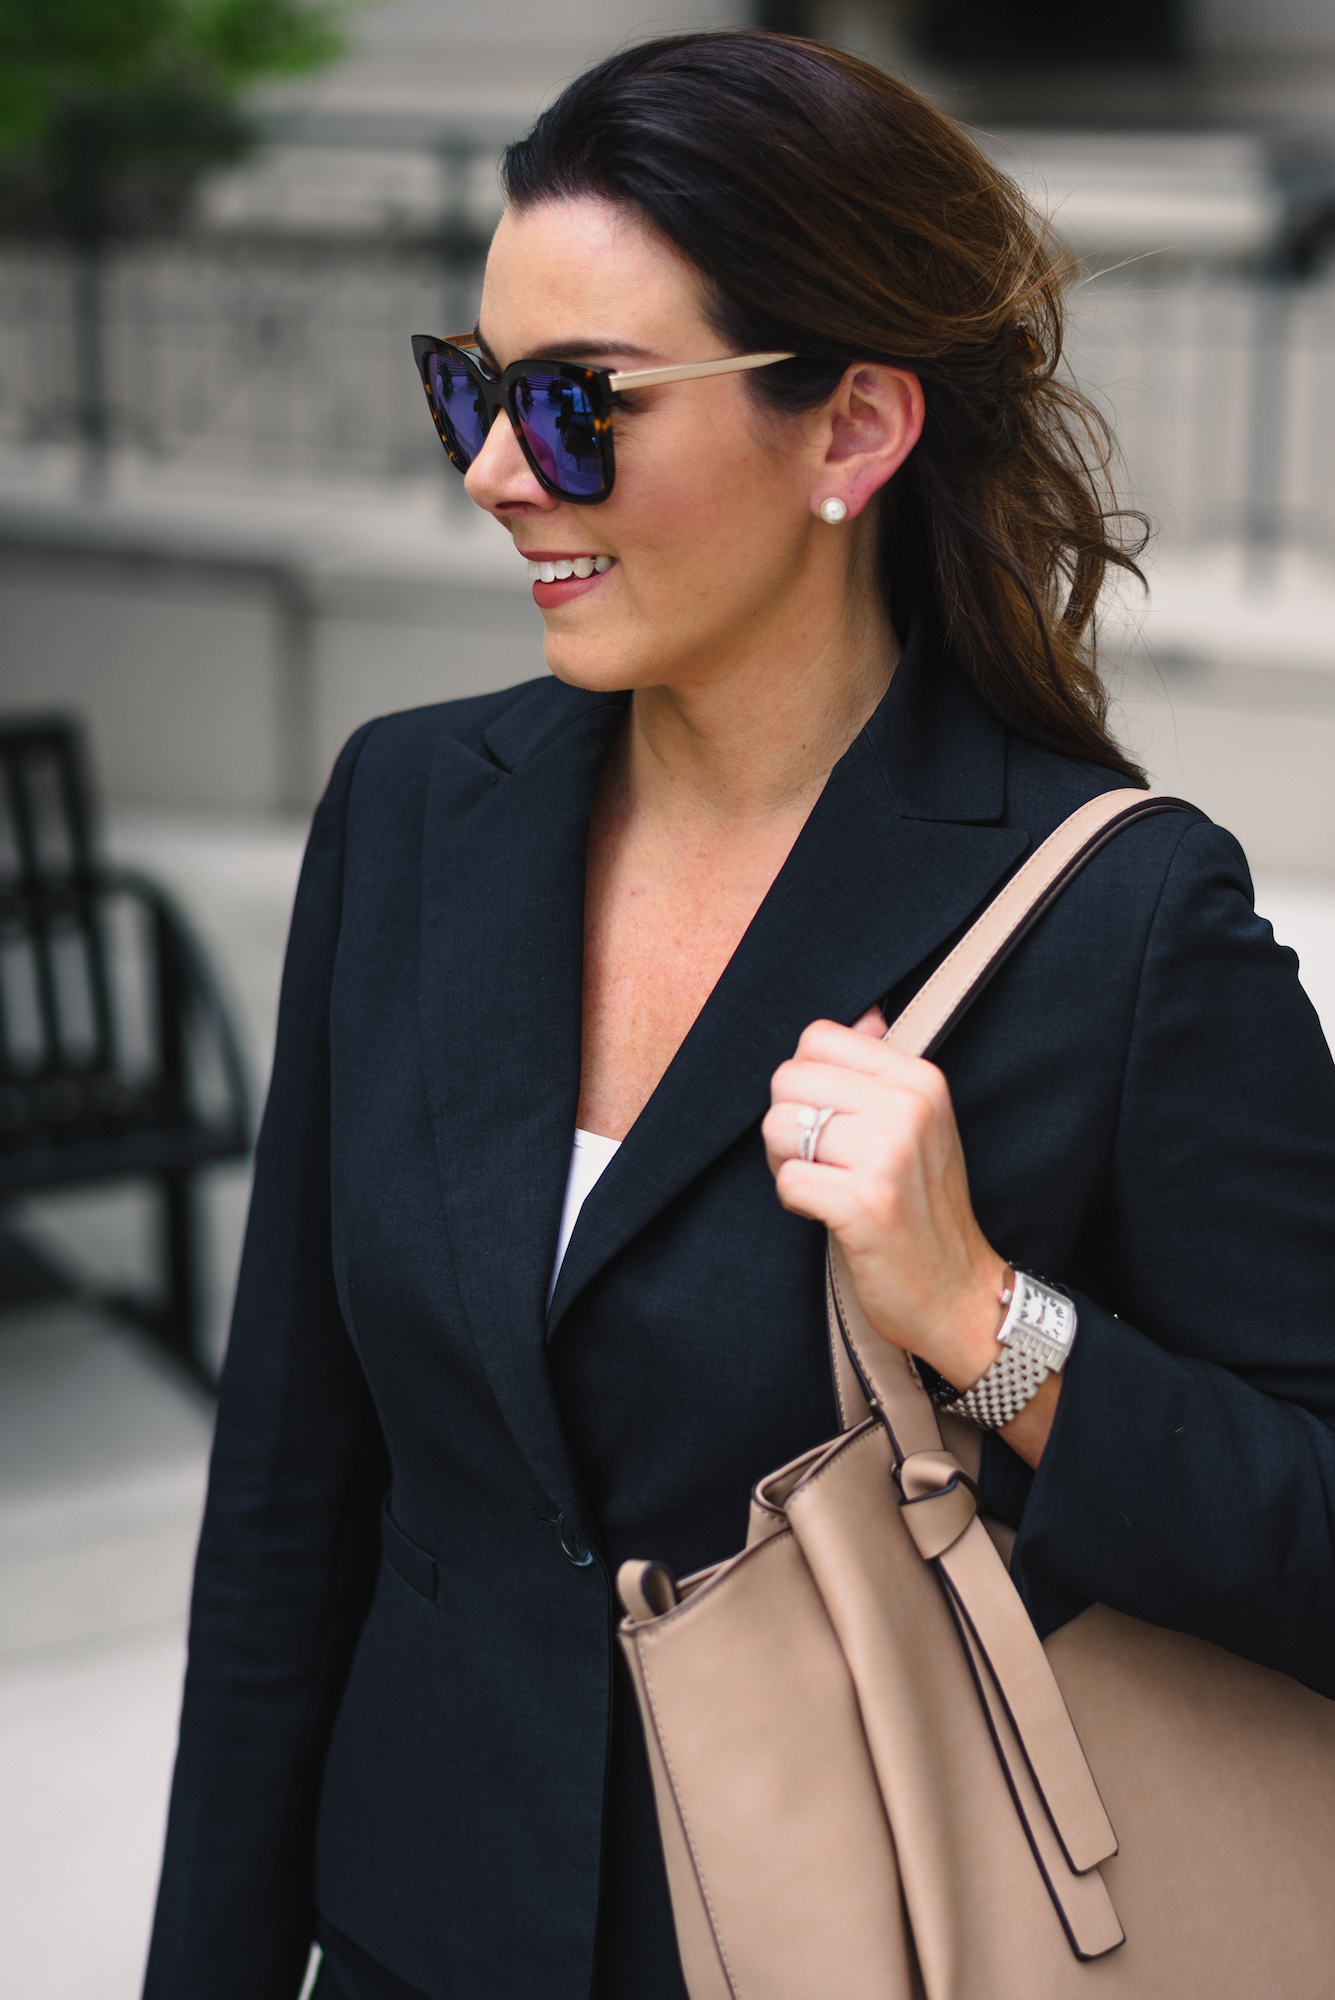 Navy skirt suit, business professional, pearl earrings